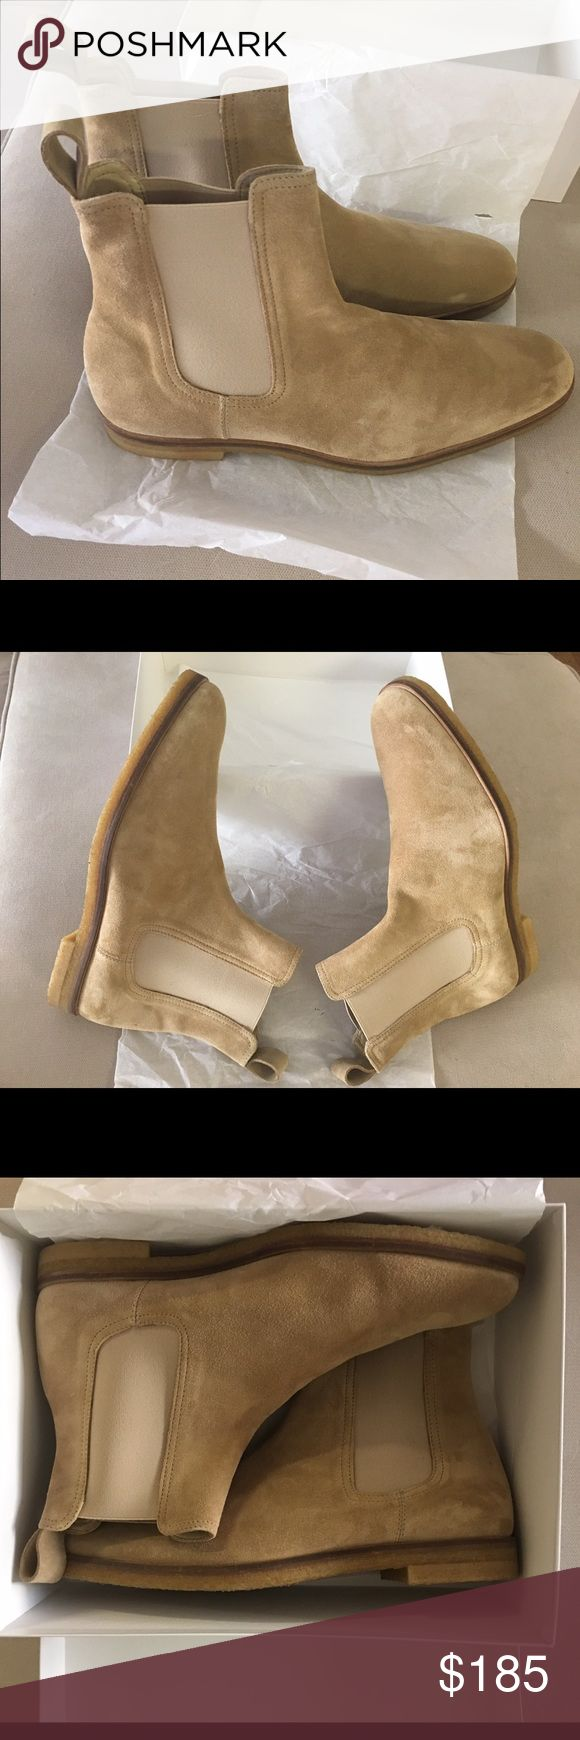 MARC WENN Suede Chelsea Boots Brand New Tan Suede Chelsea Boots Marc Wenn Shoes Boots